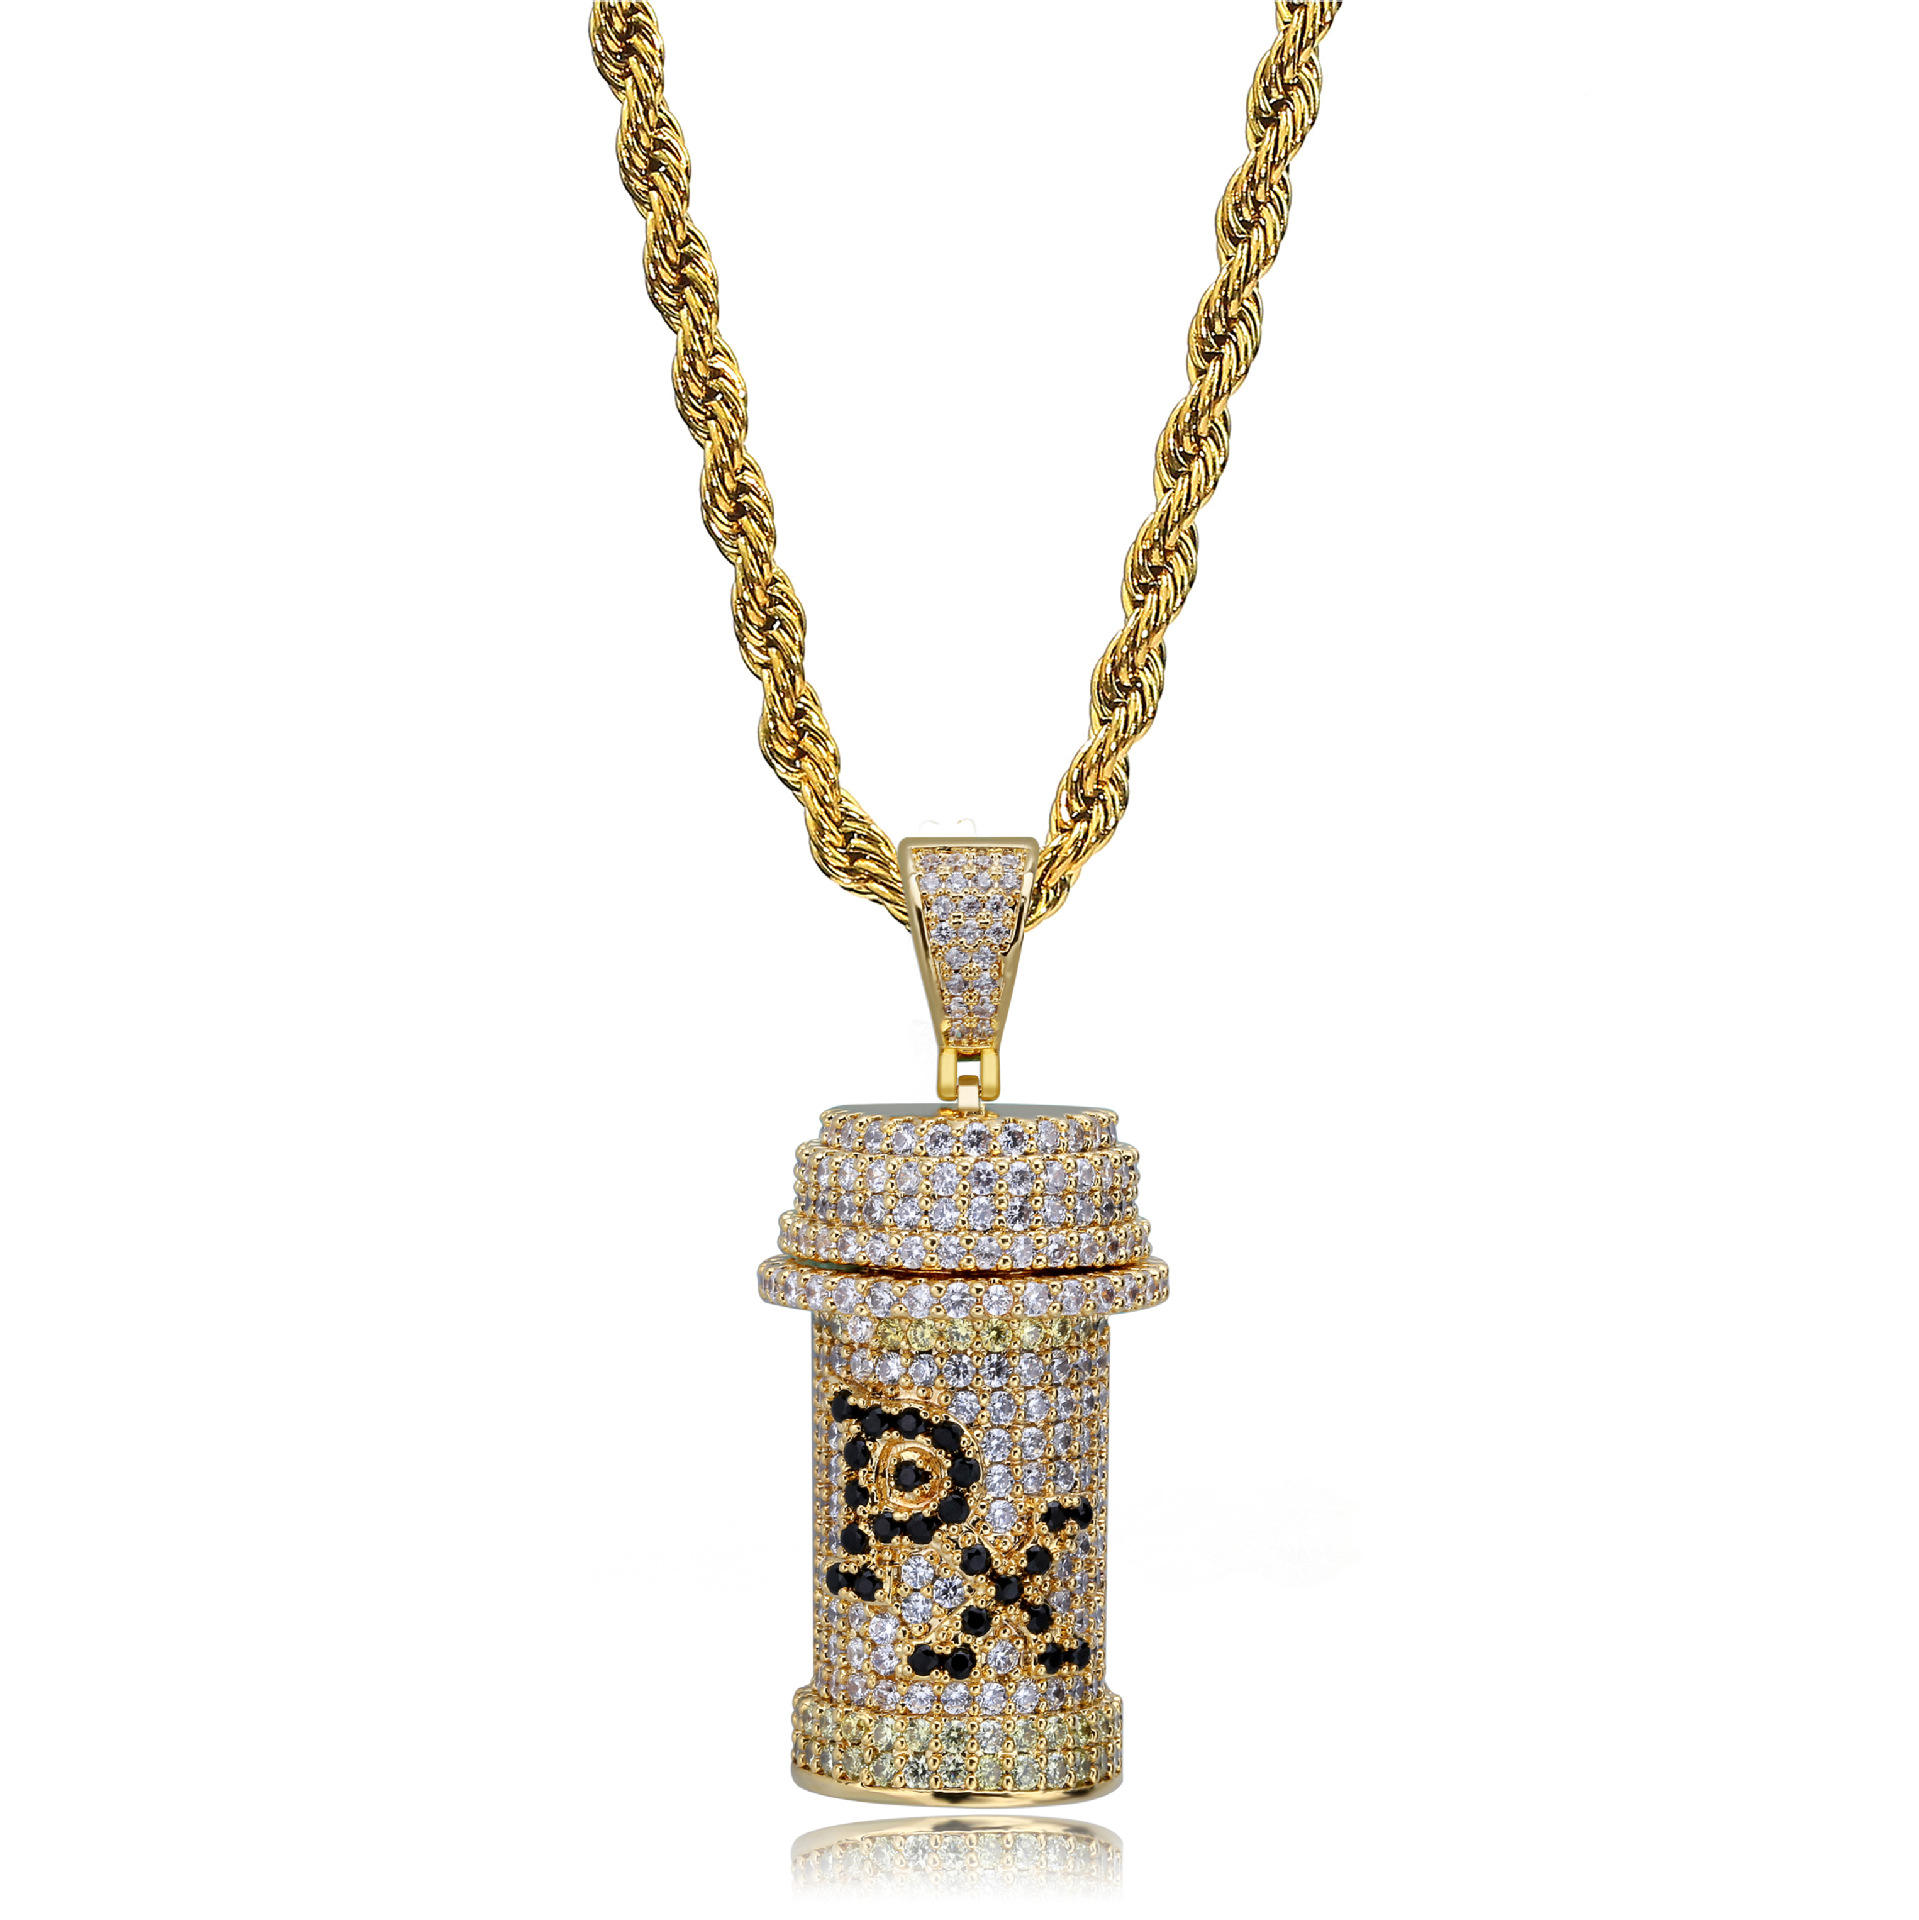 Iced Out Zircon Poison Cans PX HipHop Pendant Necklace Jewelry Drop